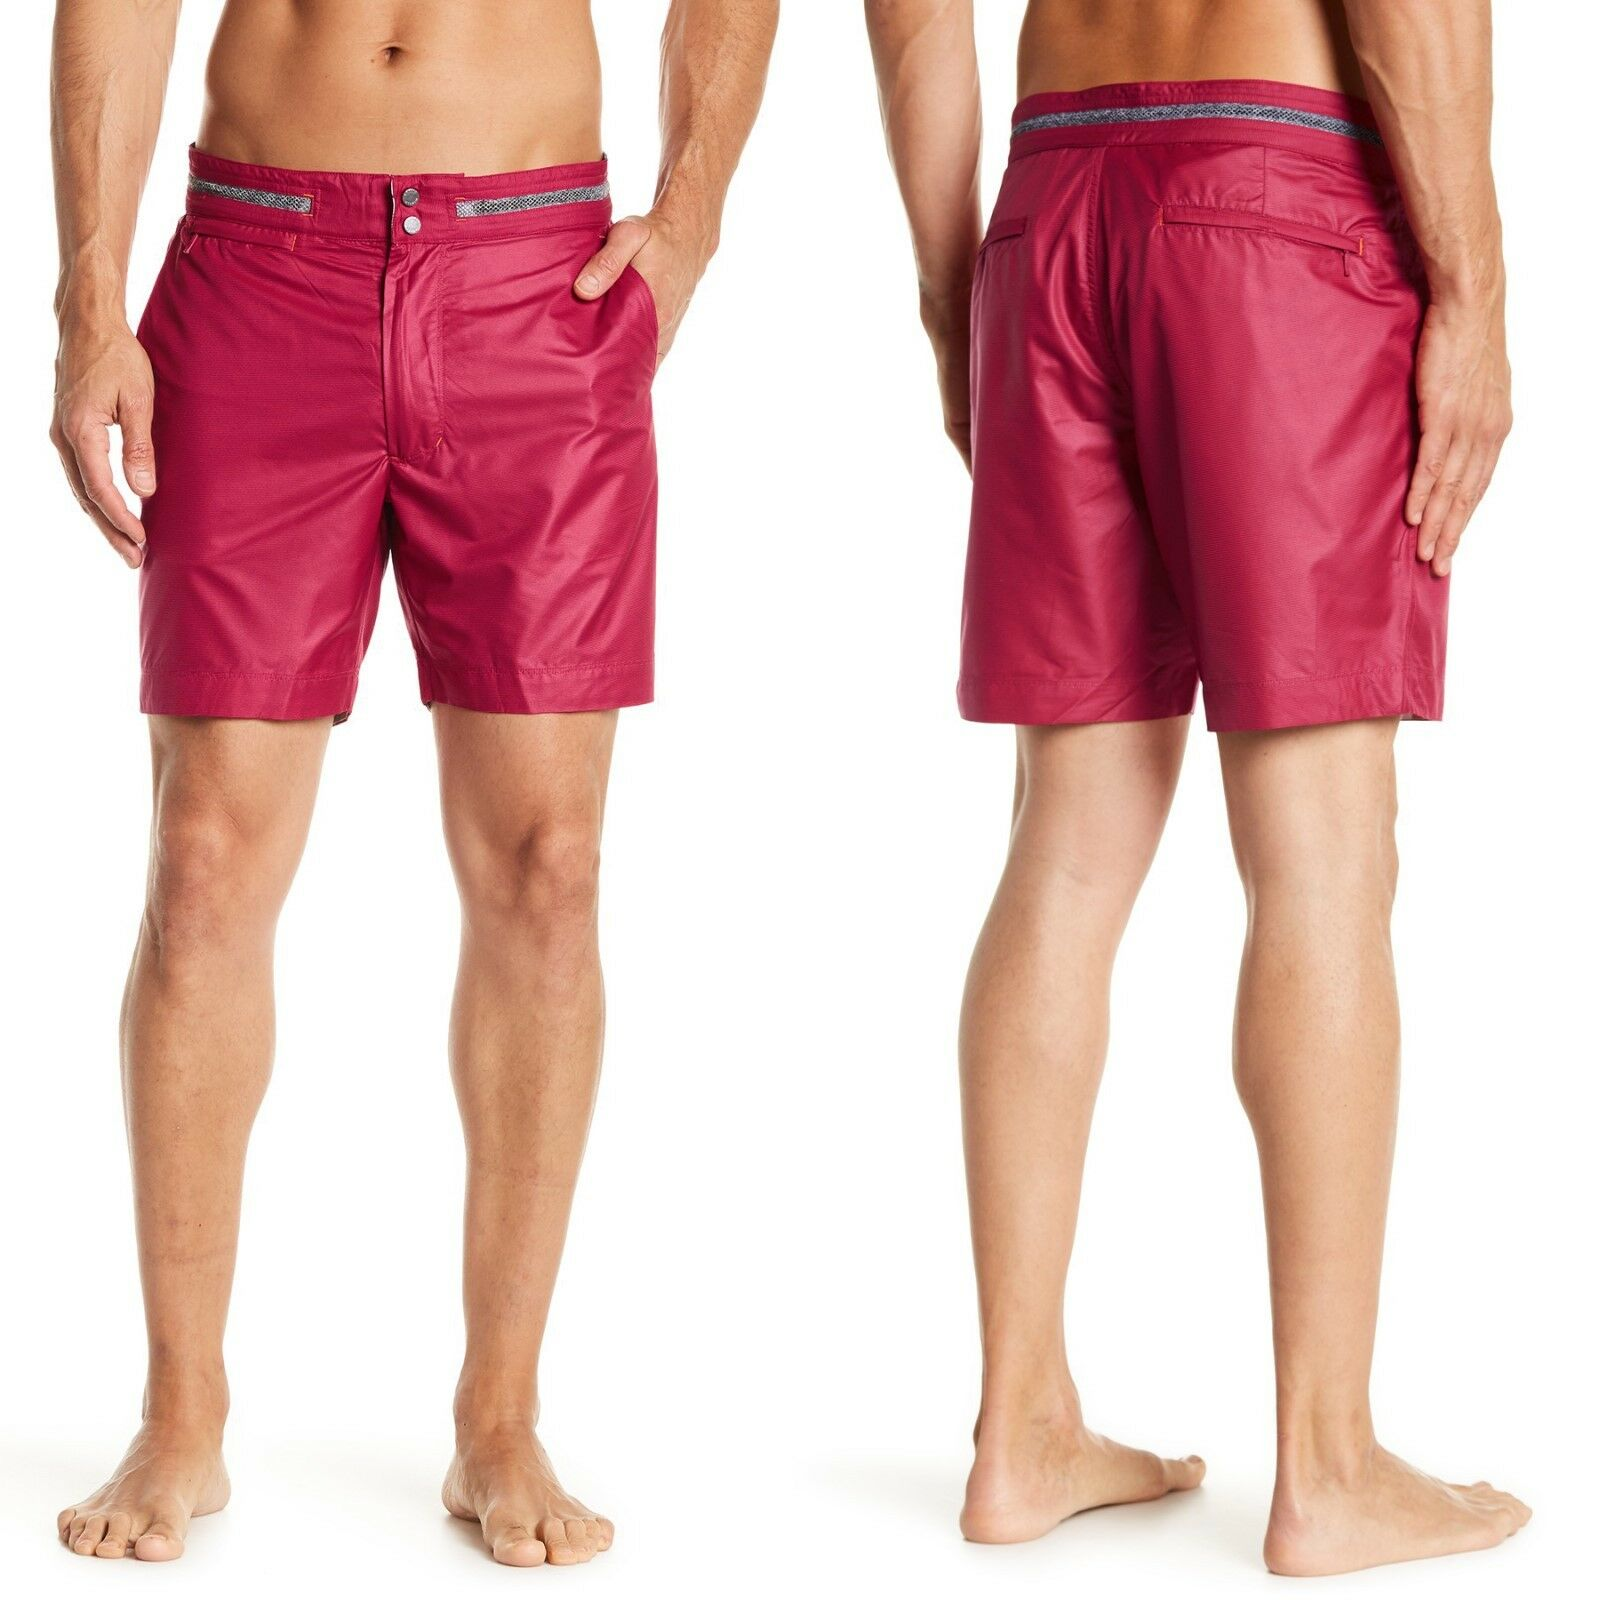 ROBERT GRAHAM Disembark Zip Fly Swim Shorts Trunks in Raspberry Sz.36  NWT